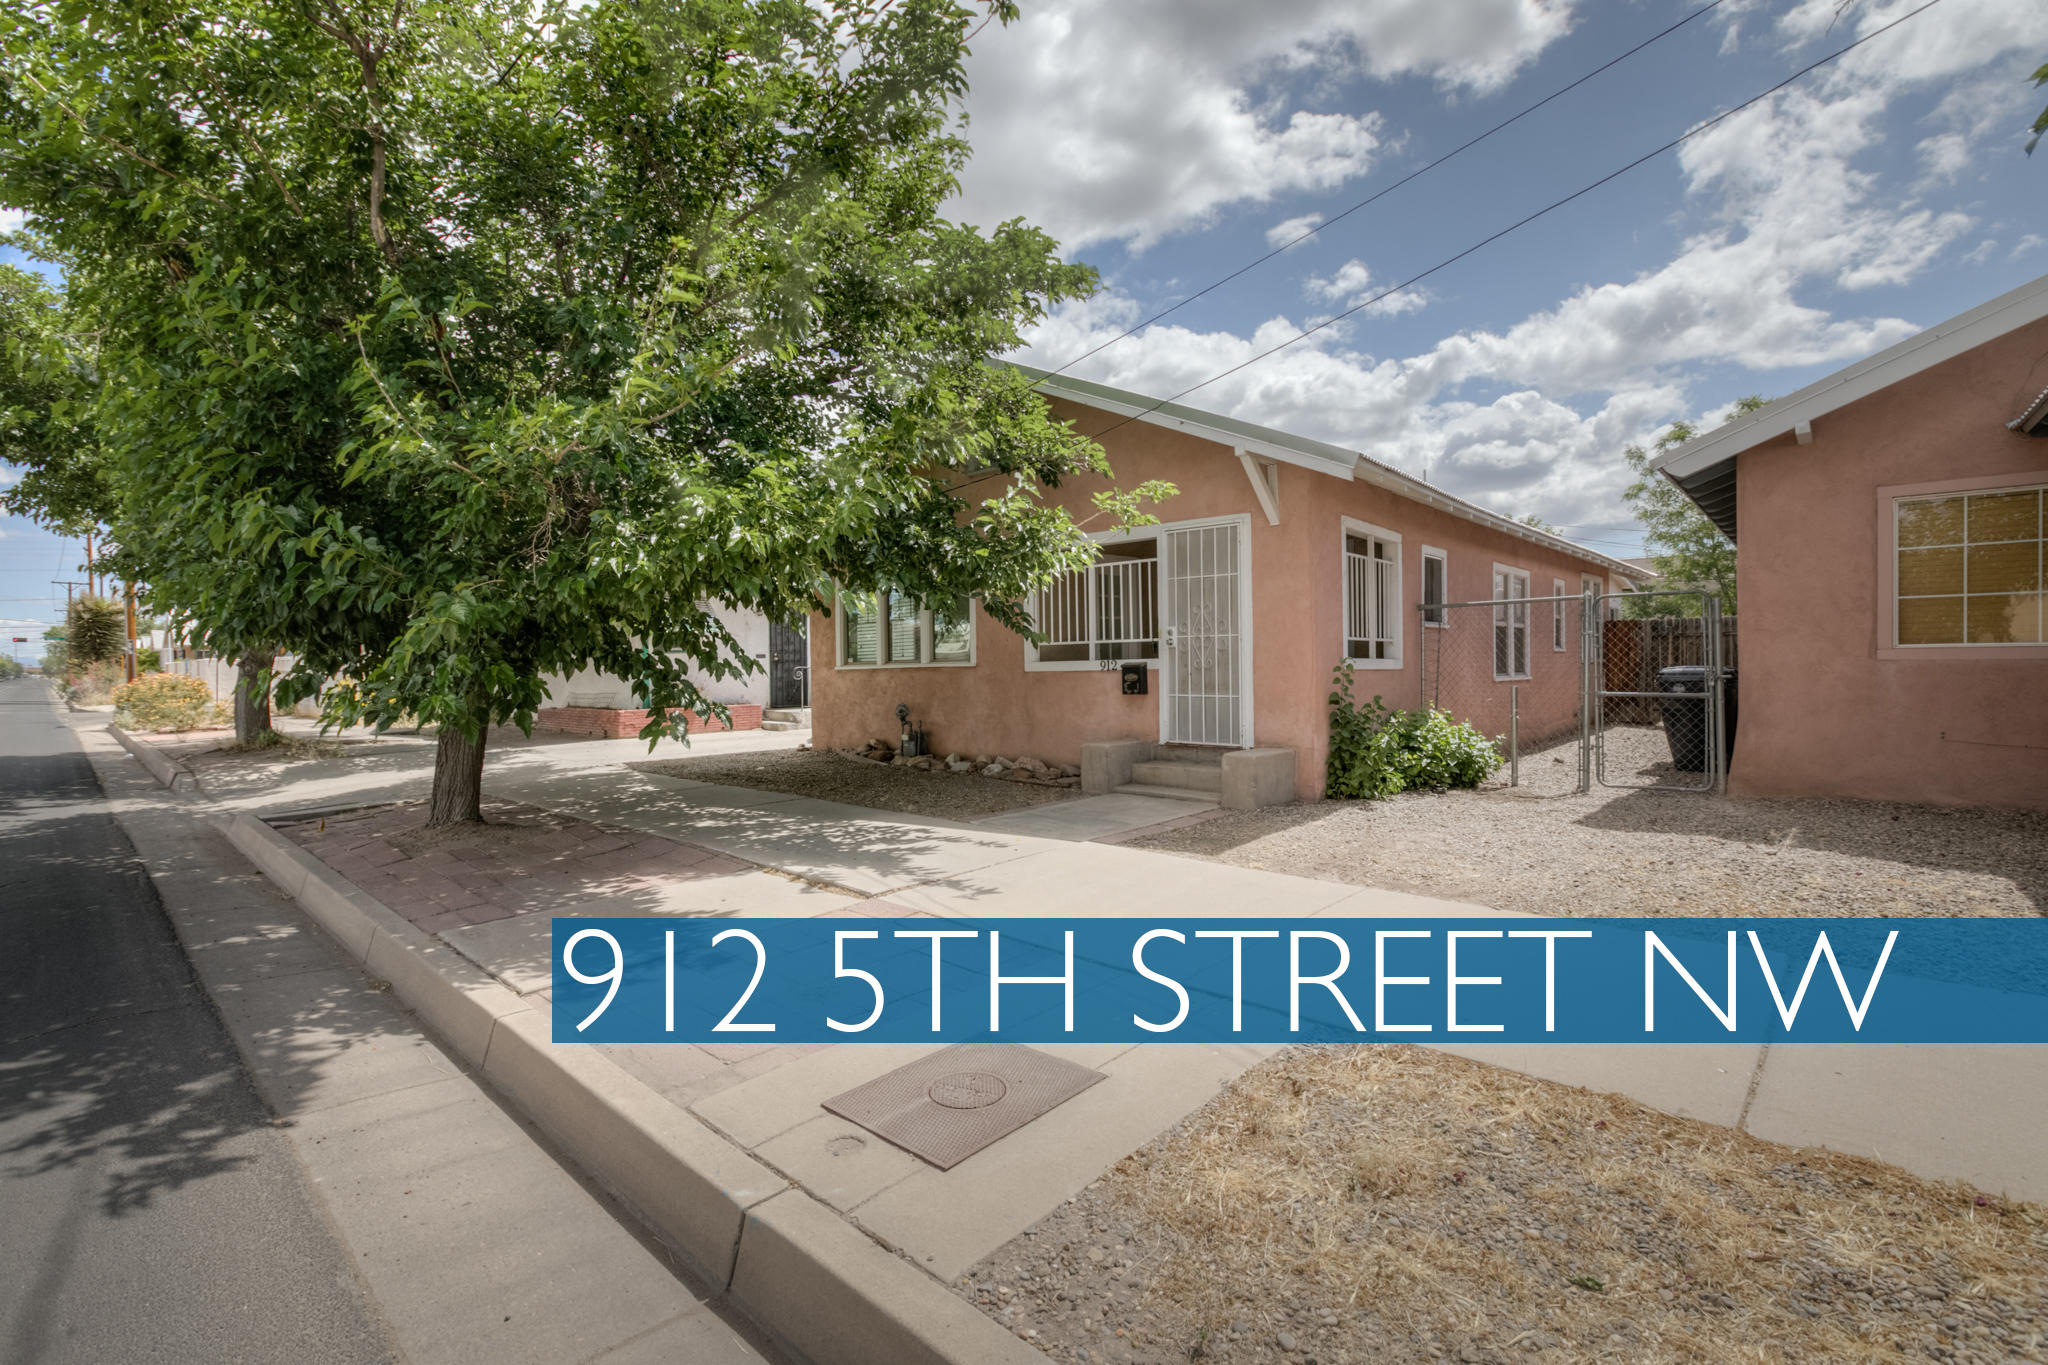 This wonderful property is zoned Mx- Multi use, so that means you can use it as your home or your office or both! Hardwood, charm galore.